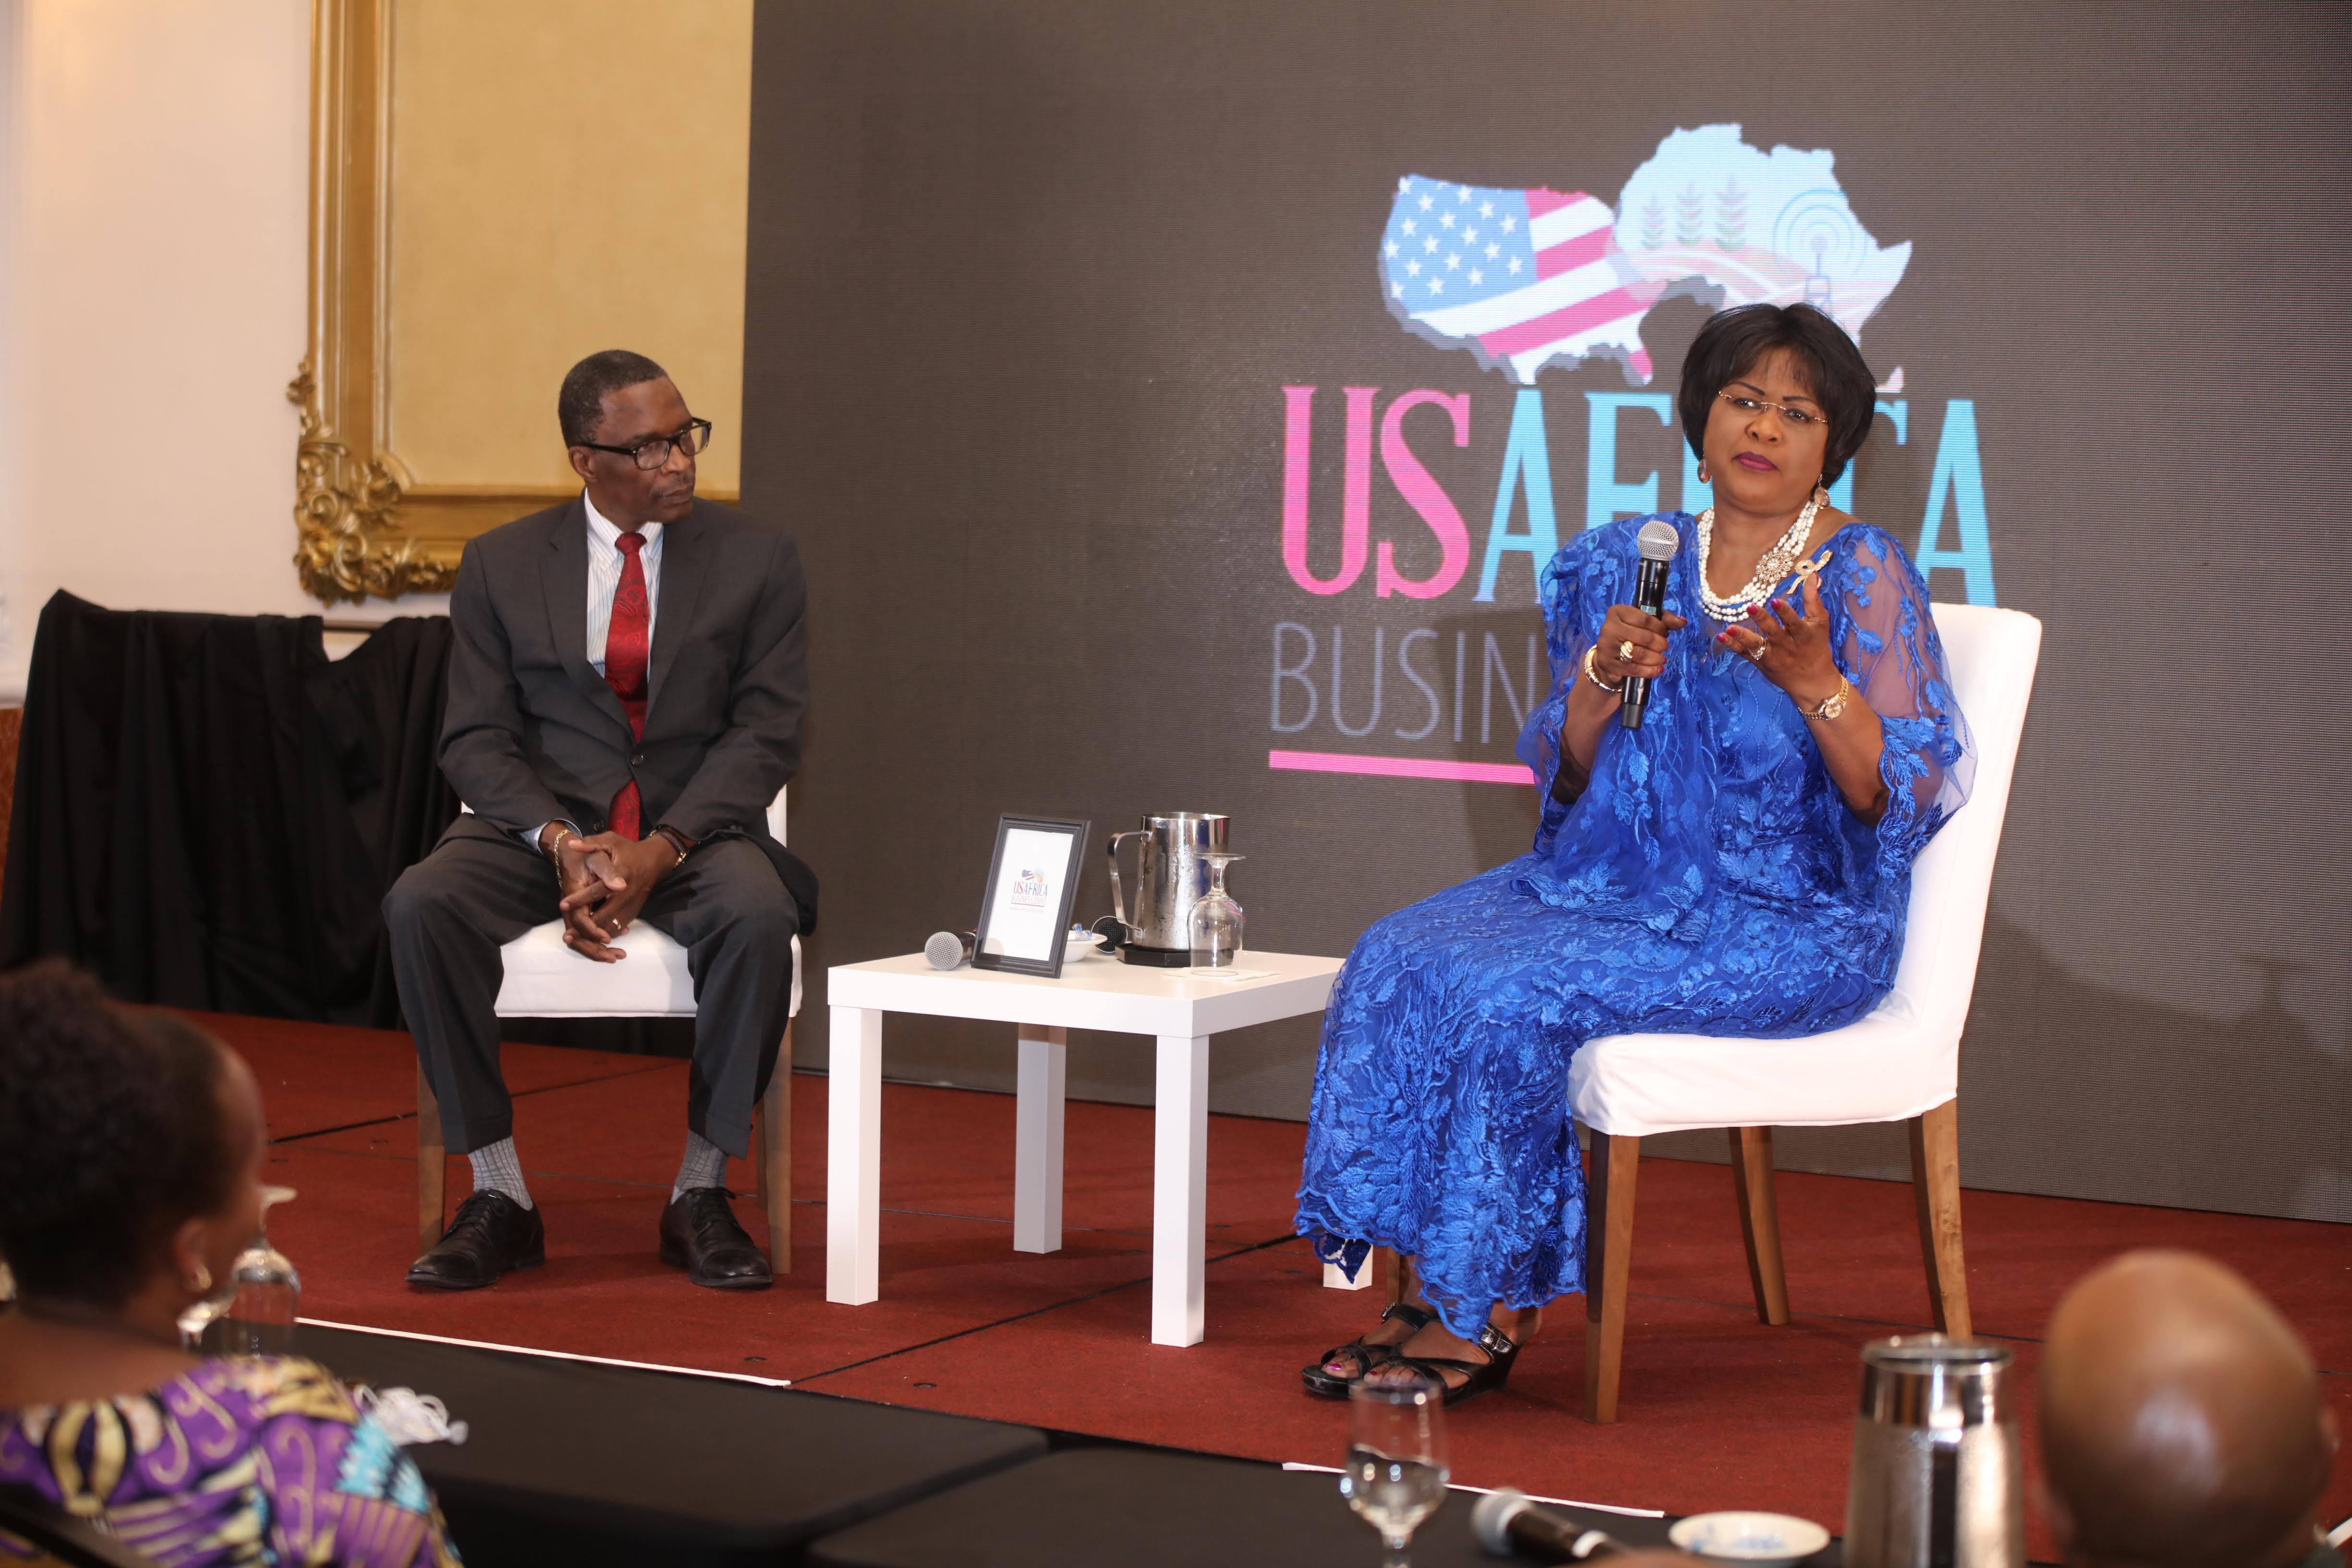 Usafrica business expo